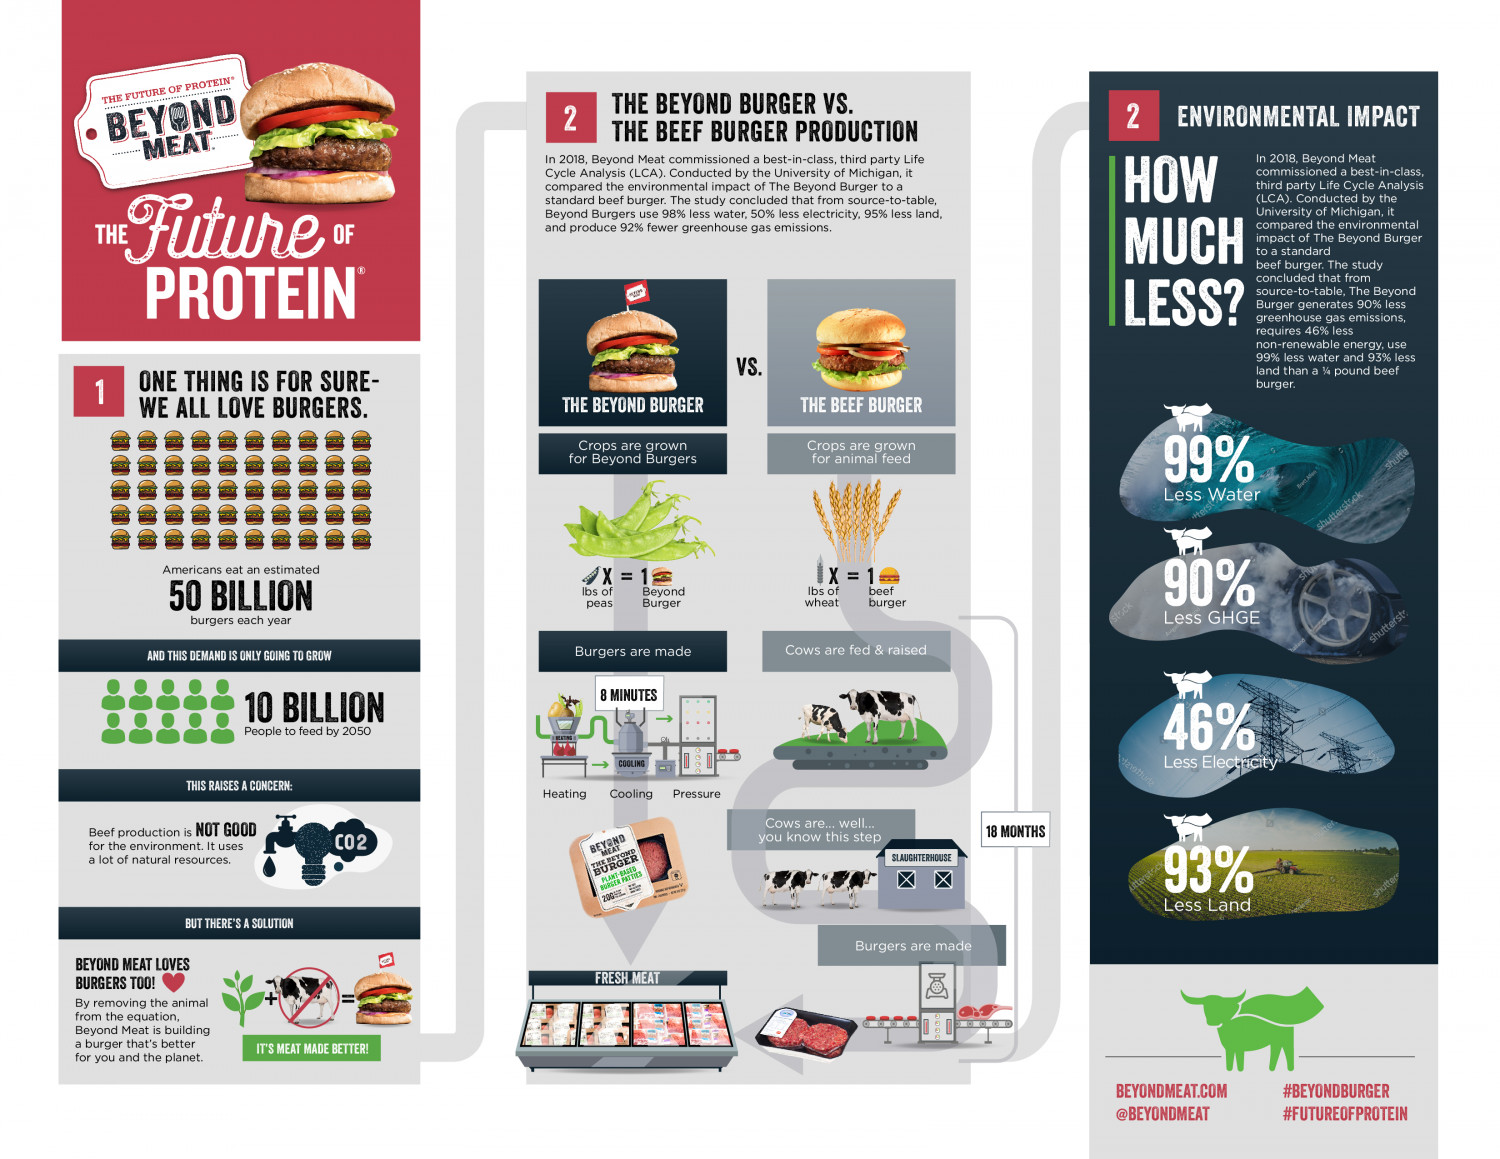 The Future of Protein Infographic